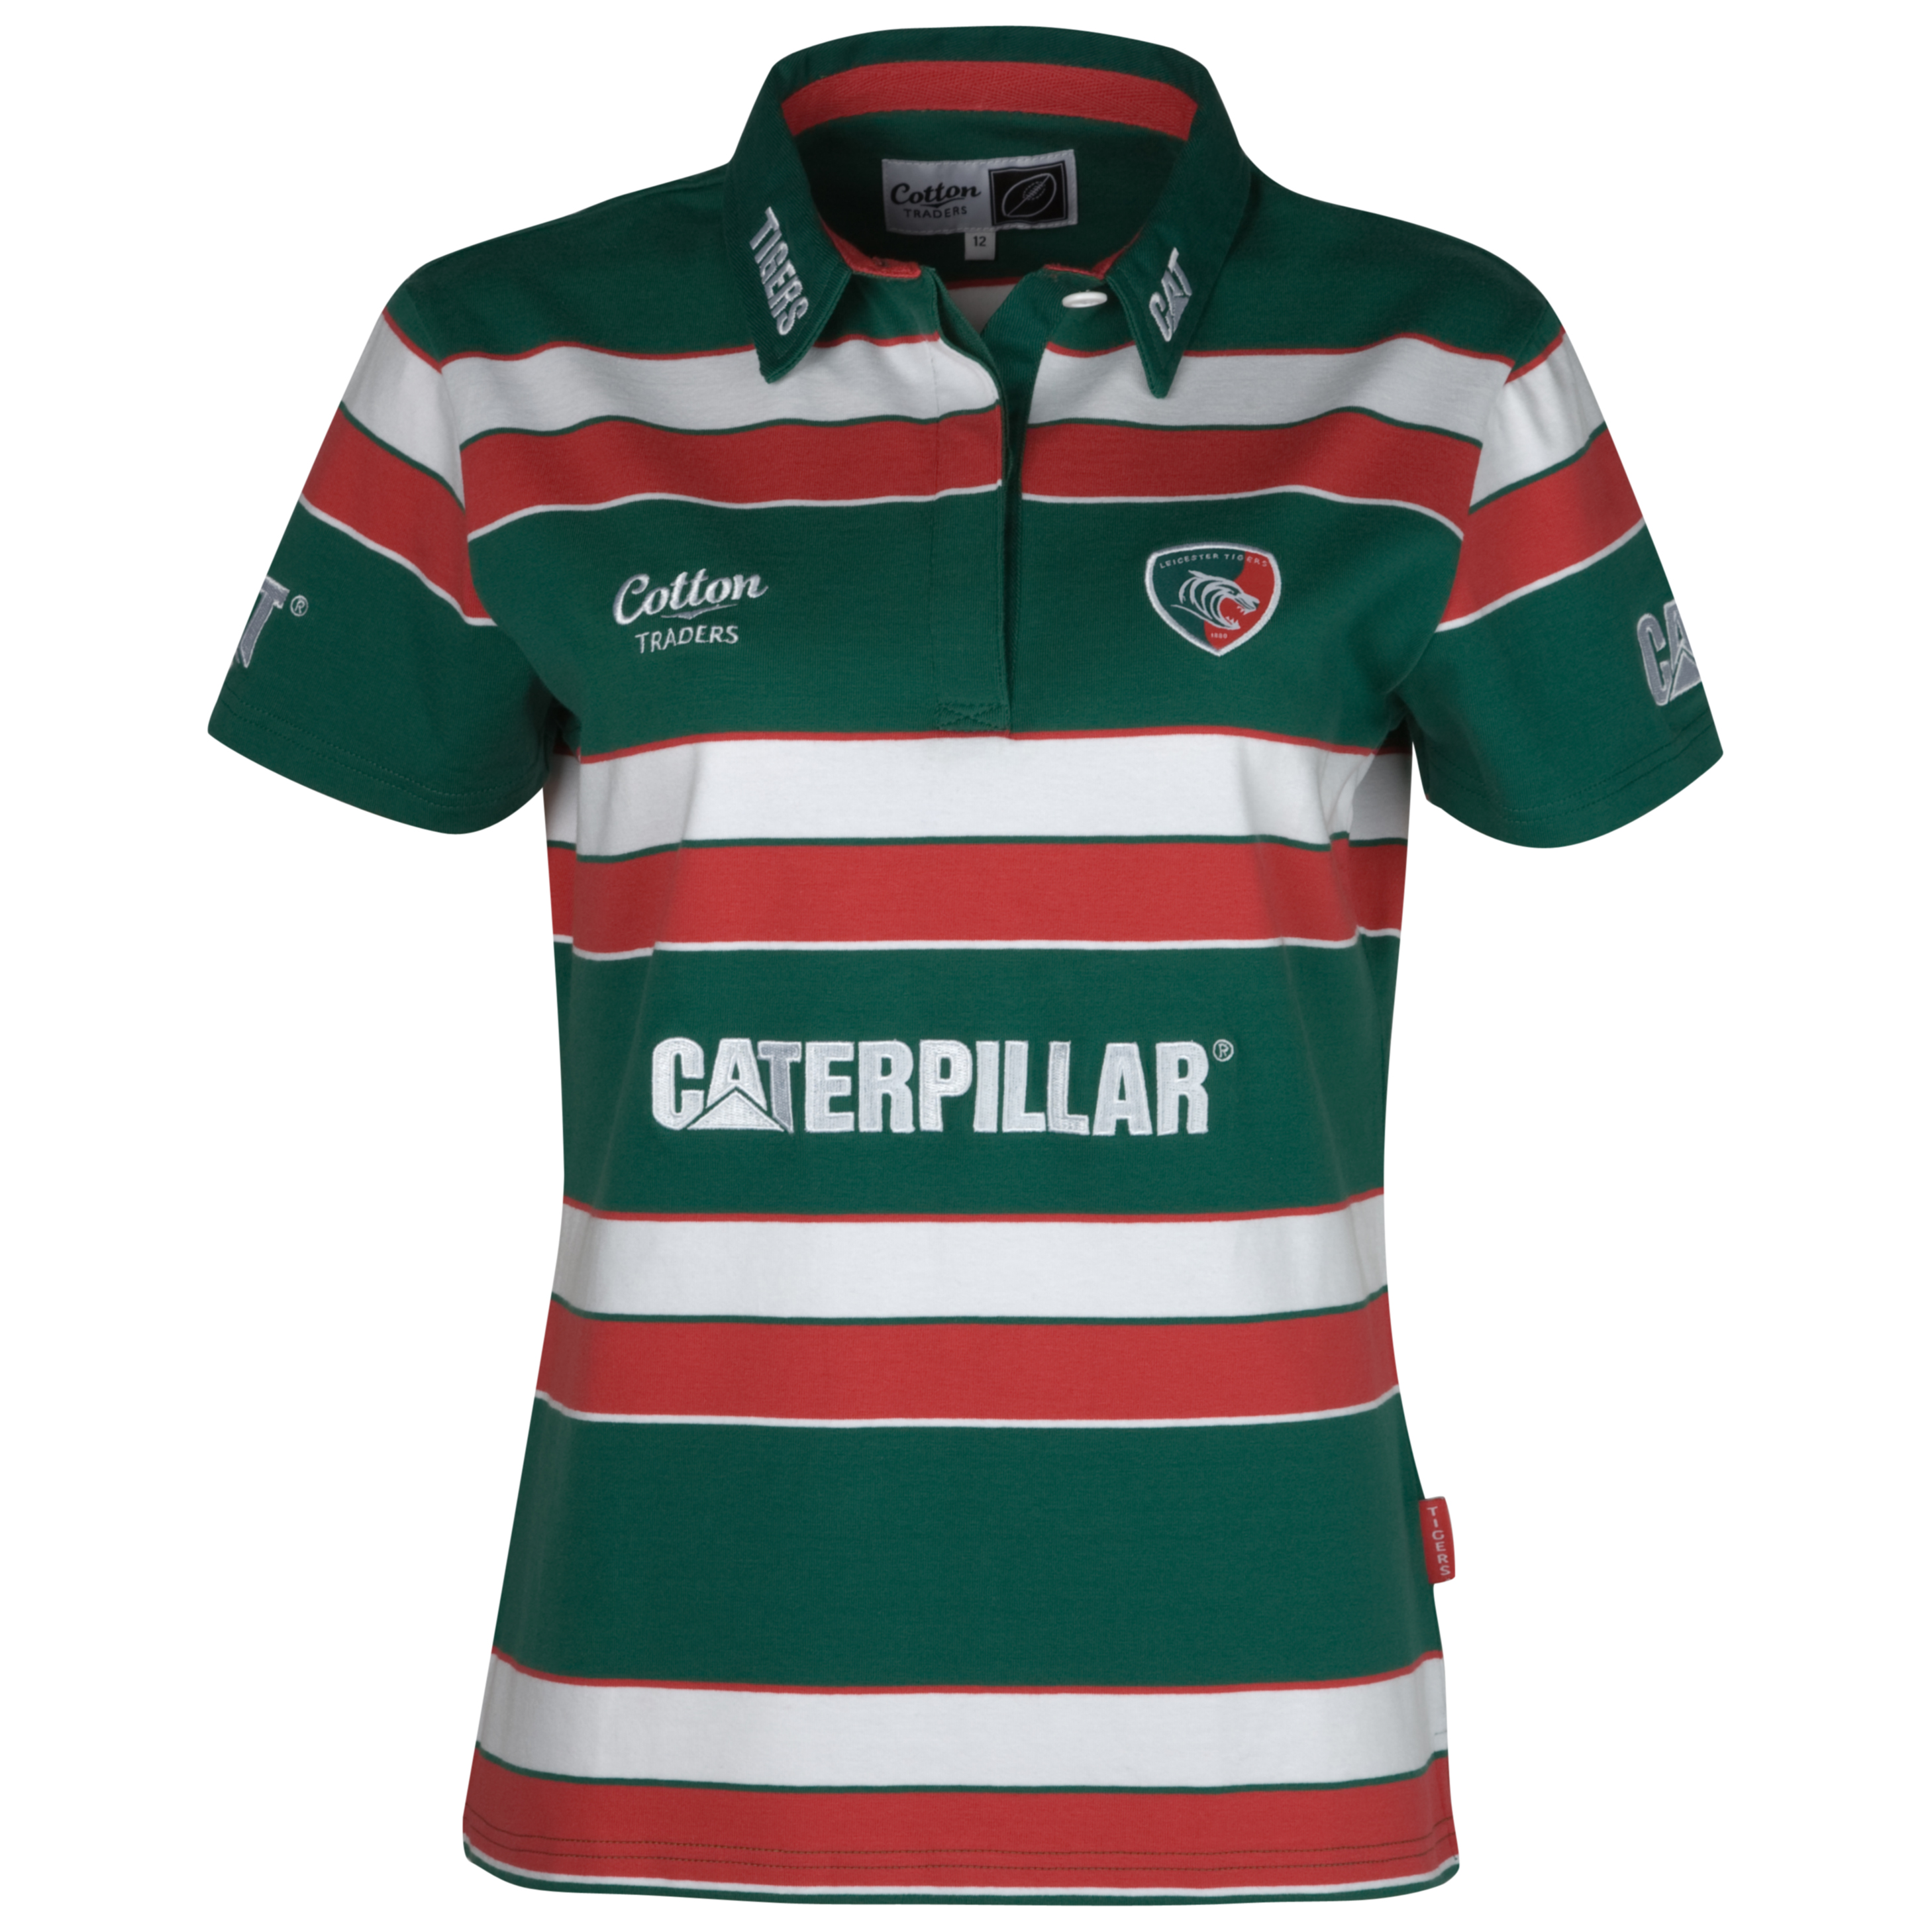 Leicester Tigers Home Shirt 11/12 - Short Sleeved - Womens. for 20€